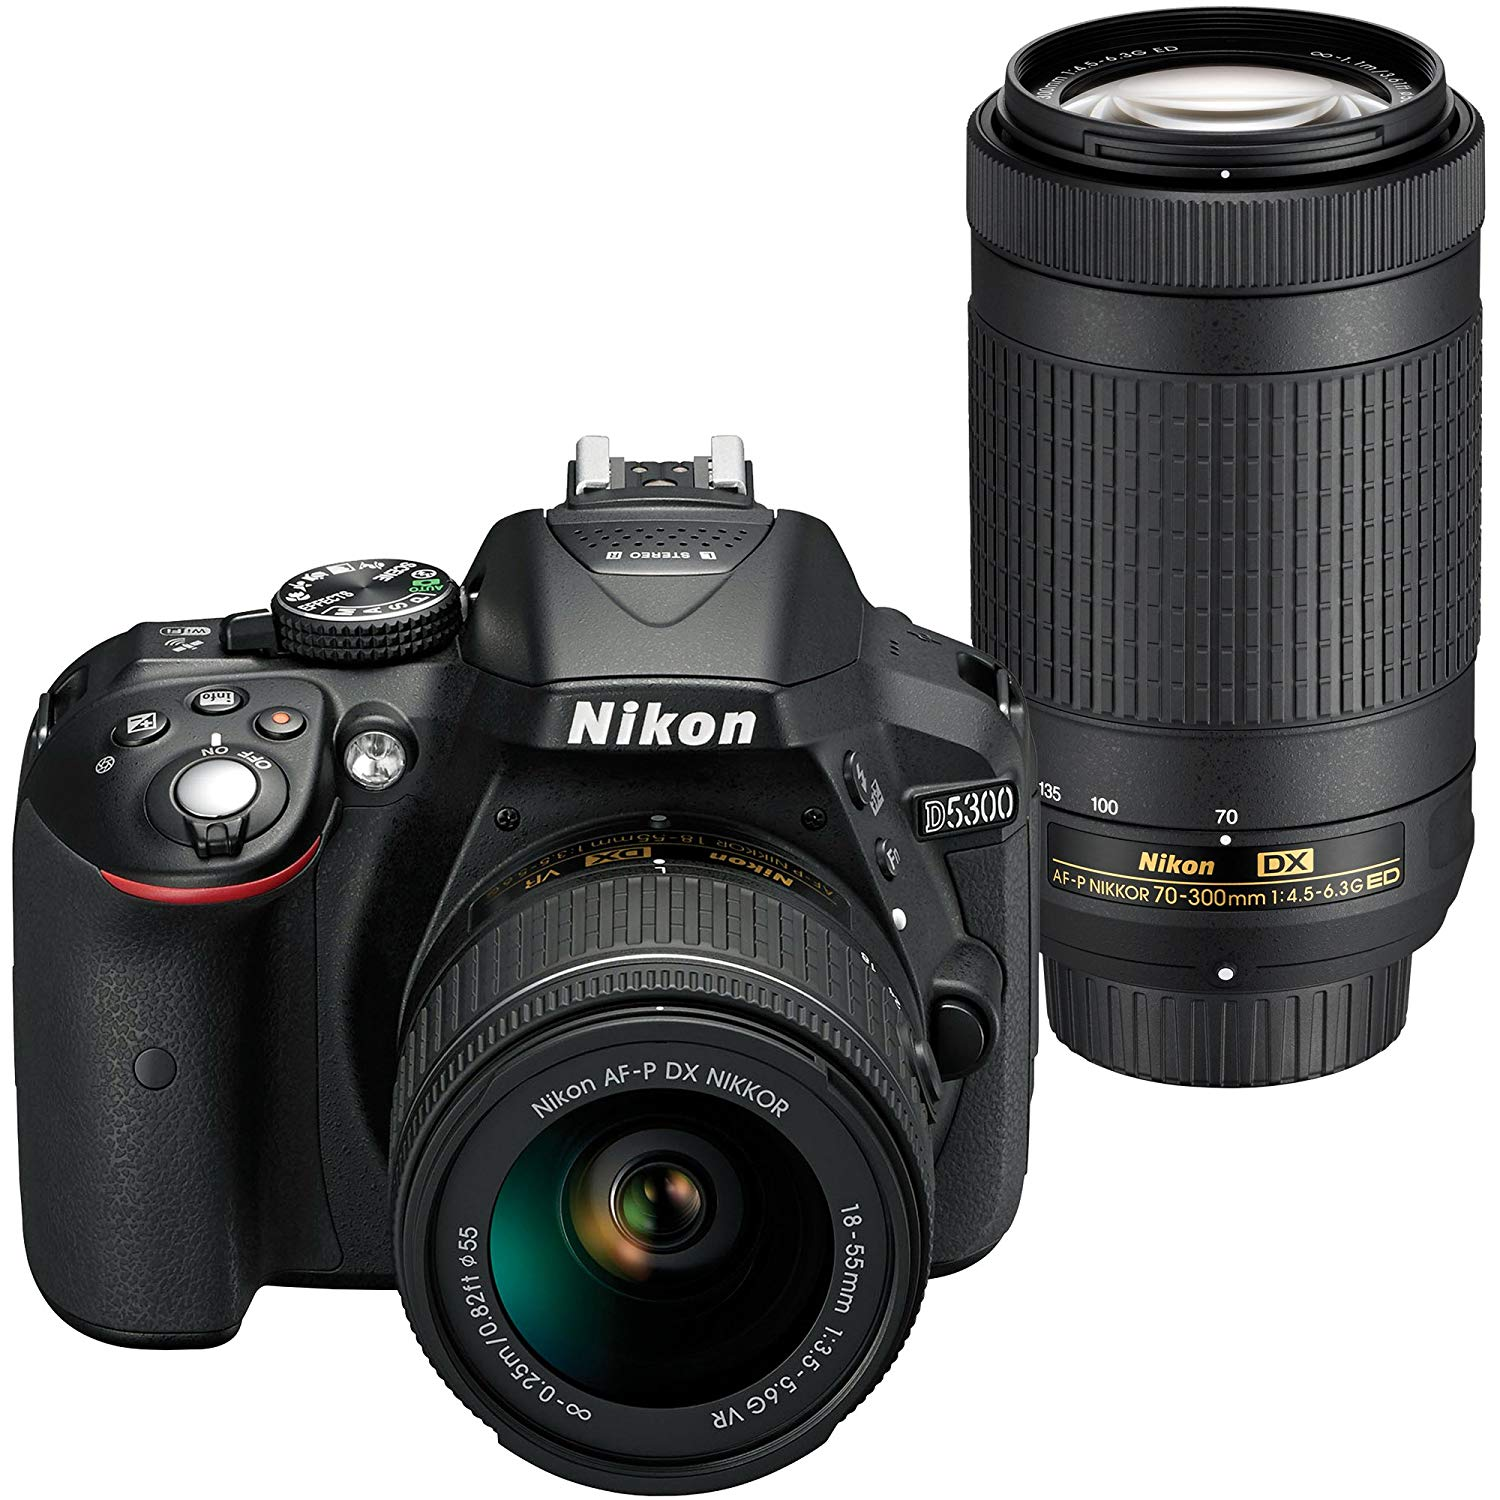 Nikon D5300 Deals Cheapest Price Camera Rumors D5200 Kit 18 55mm Vr Ii Amazon Has A Great Deal On Dslr With Af P Dx Nikkor F 35 56g 70 300mm 45 63g Ed